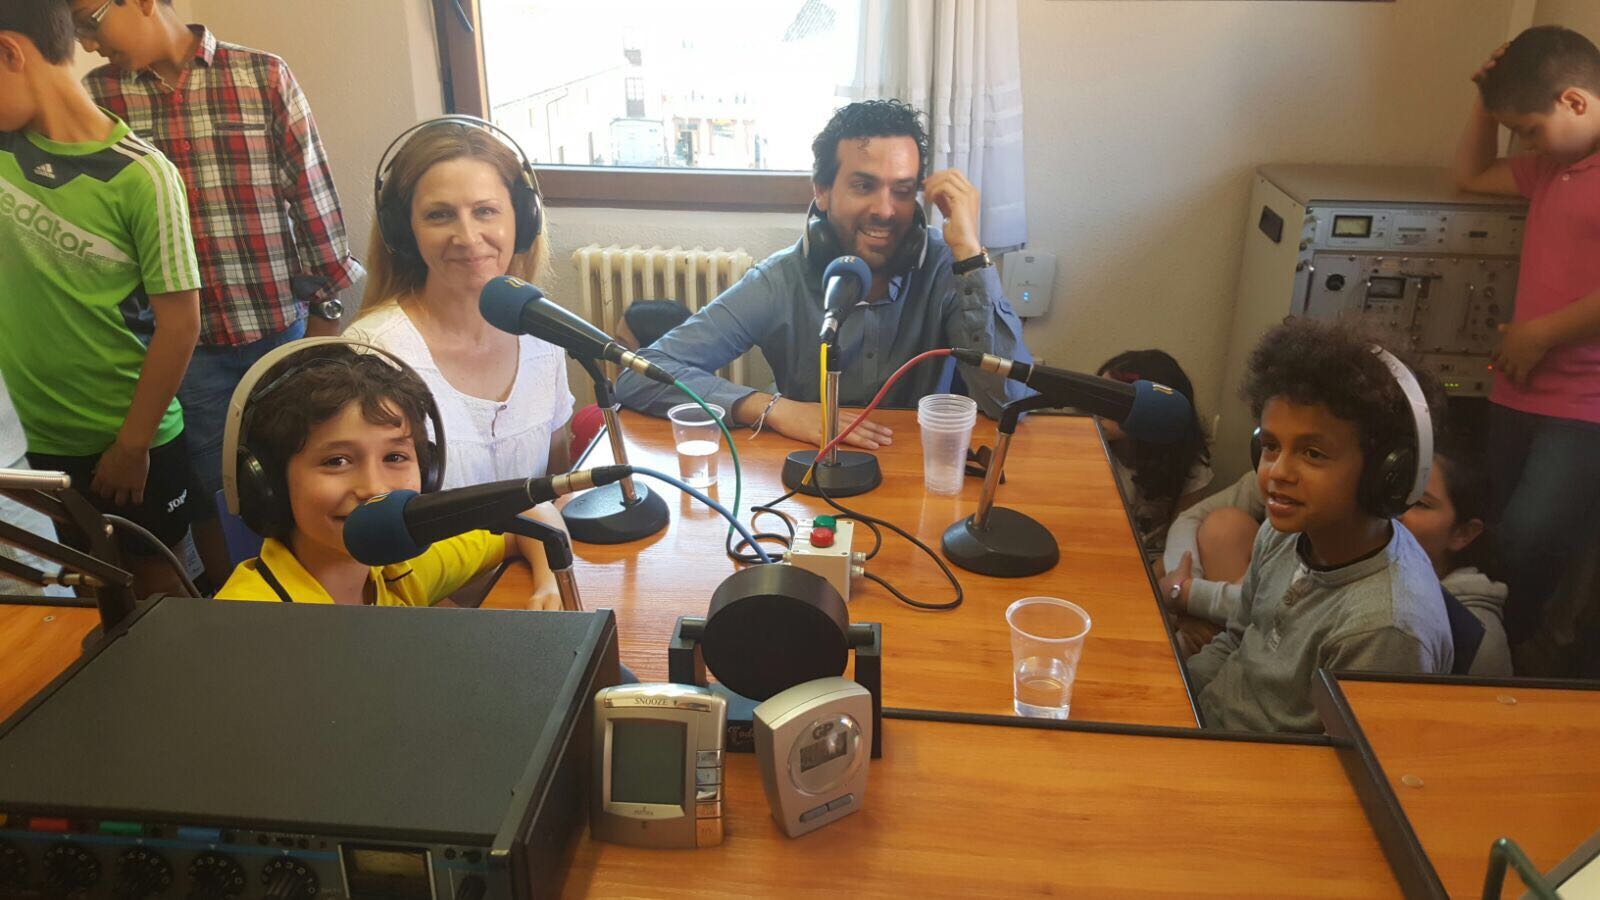 We have been ay @radioaguilar with​ @colsangregorio & @HTPDSchool as part of our #etwinning project and exchange. #etwinning_cyl https://t.co/0fNFf4fvUX